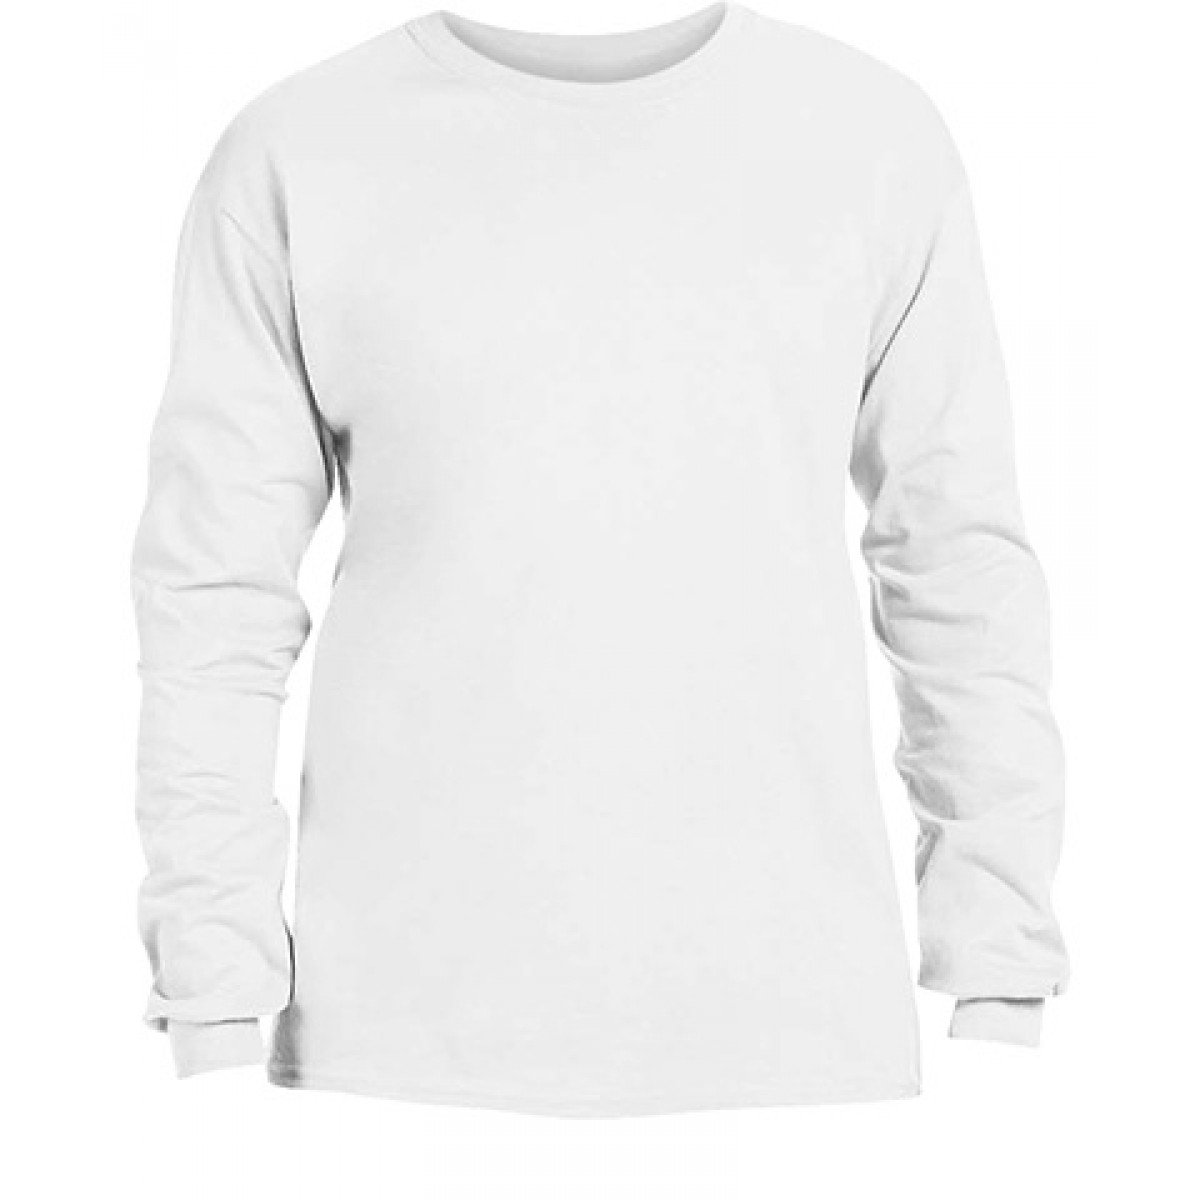 Adidas Long Sleeve T-shirt With Adidas logo-White-M